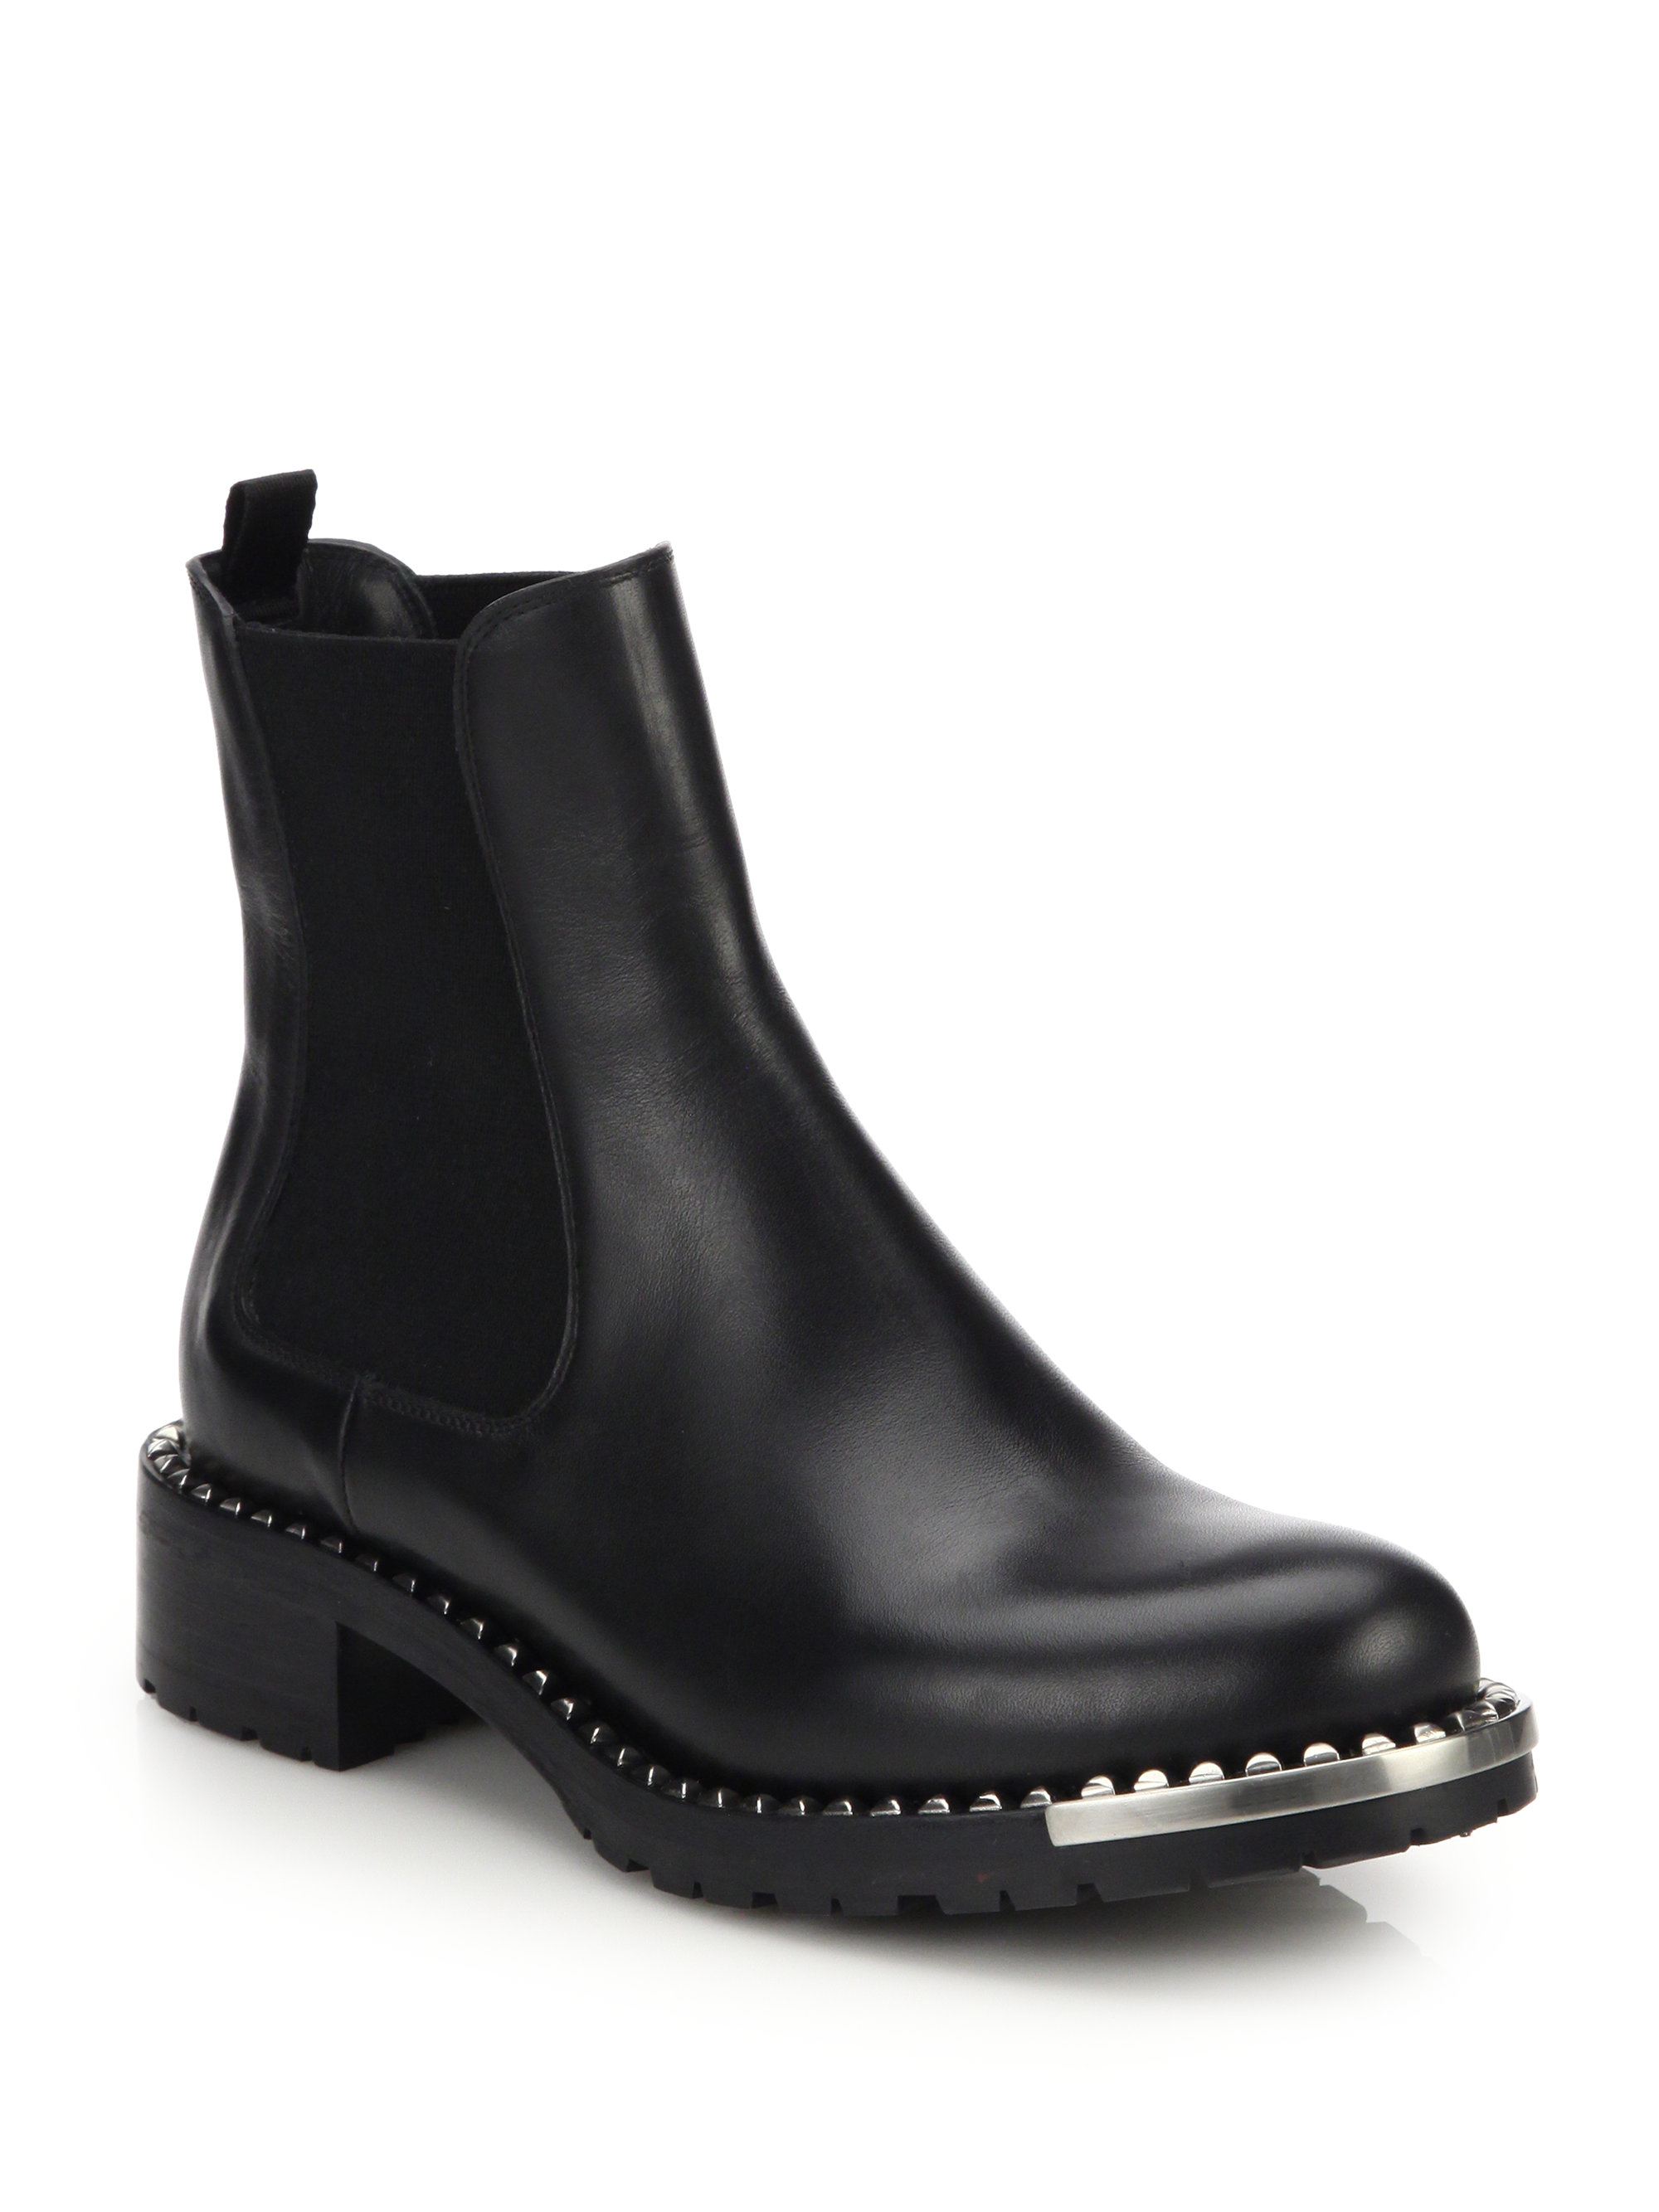 Women's Black Chelsea Leather Boots